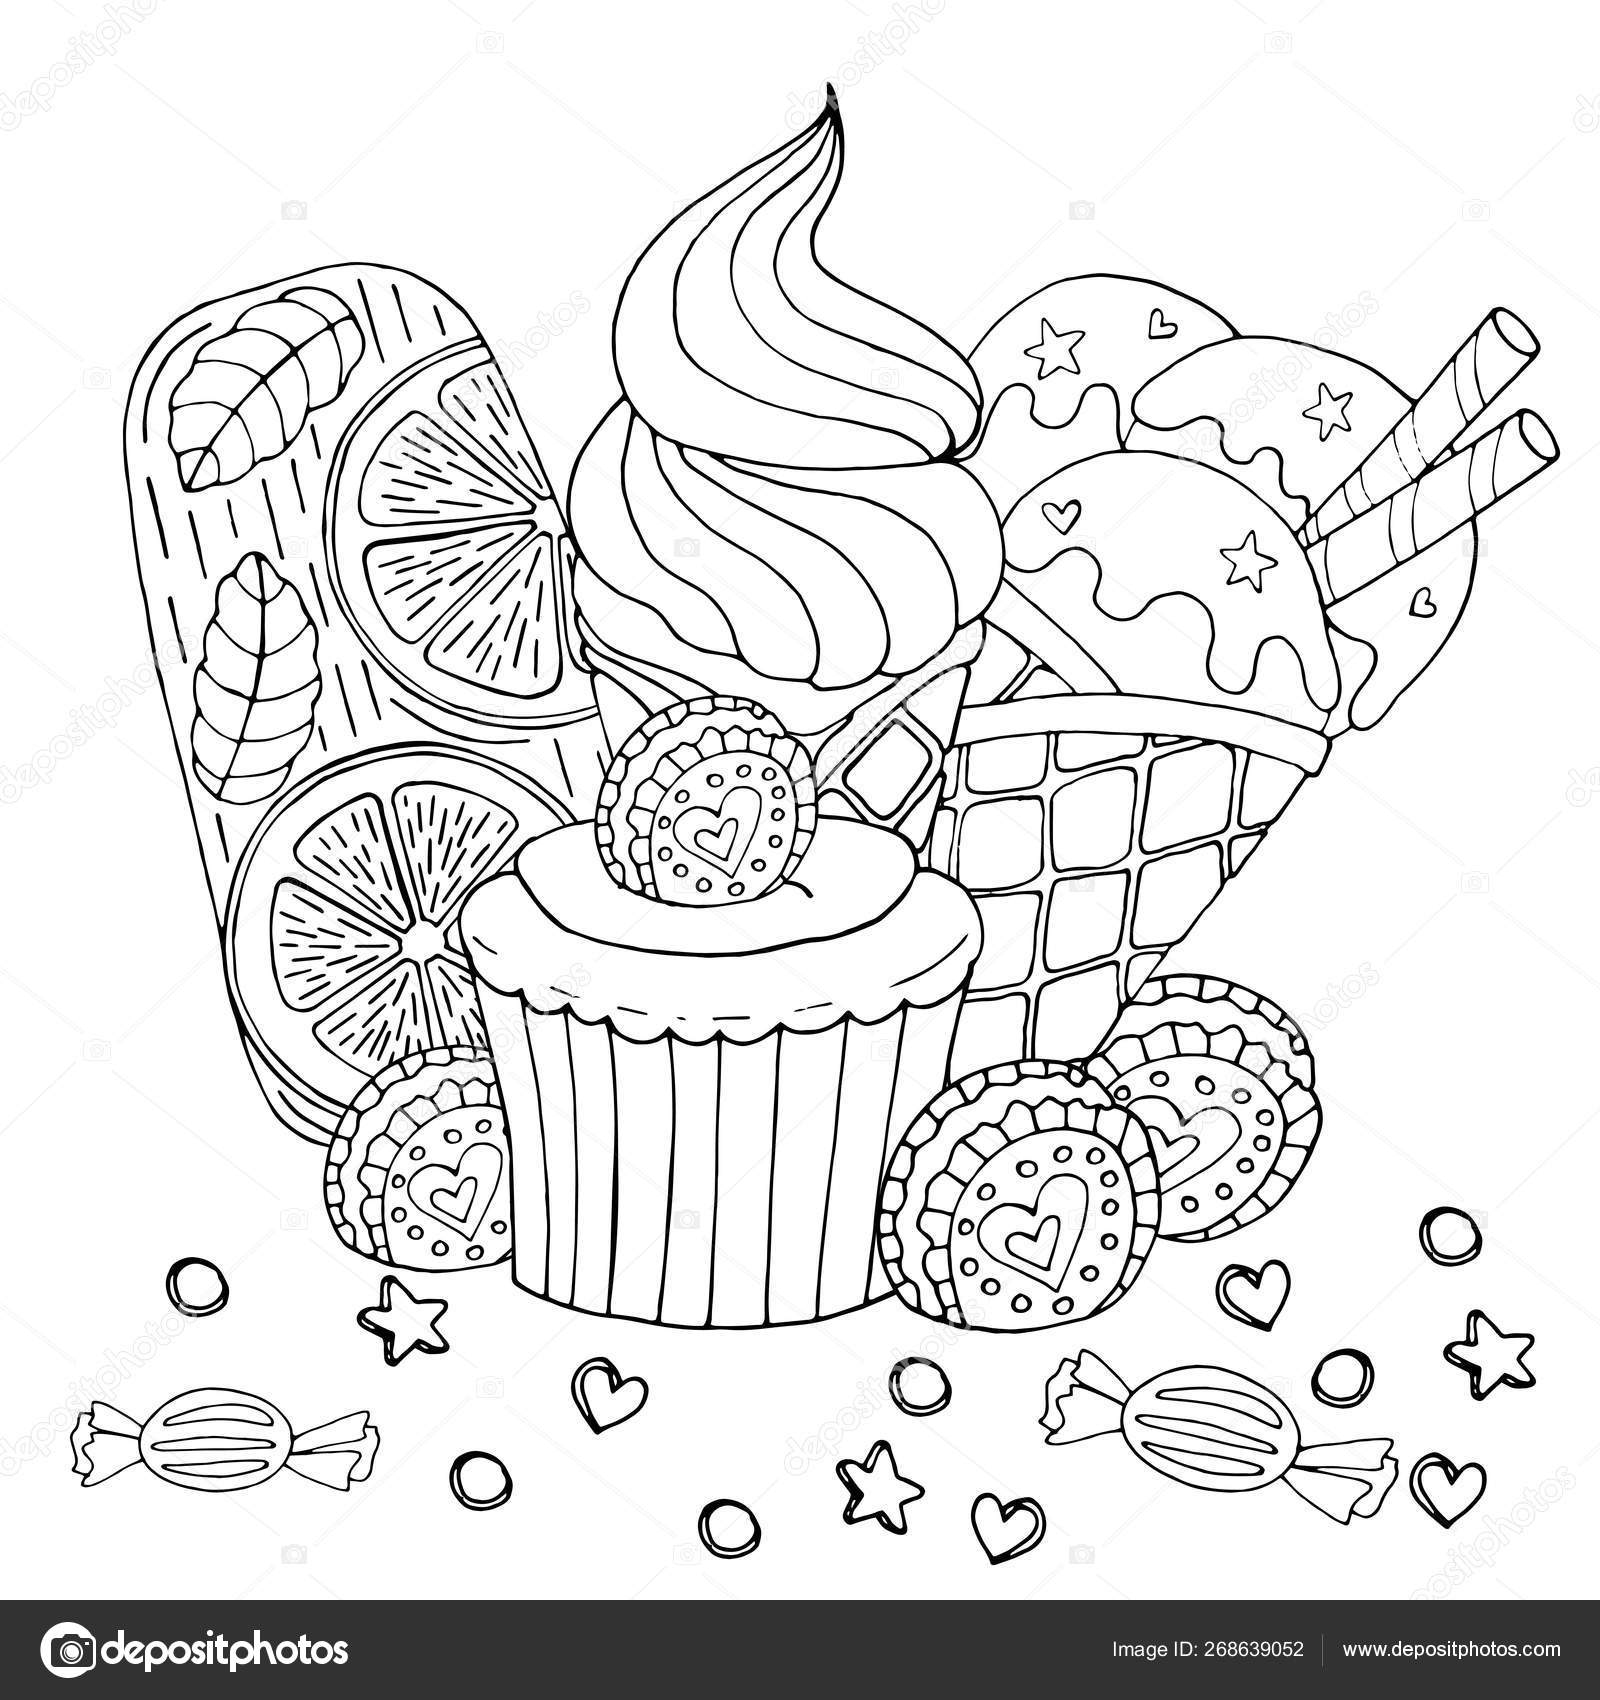 Coloring Pages Sweets Coloring Page With Cake Cupcake Candy Ice Cream And Other Des Stock Vector C Ellina200 Mail Ru 268639052